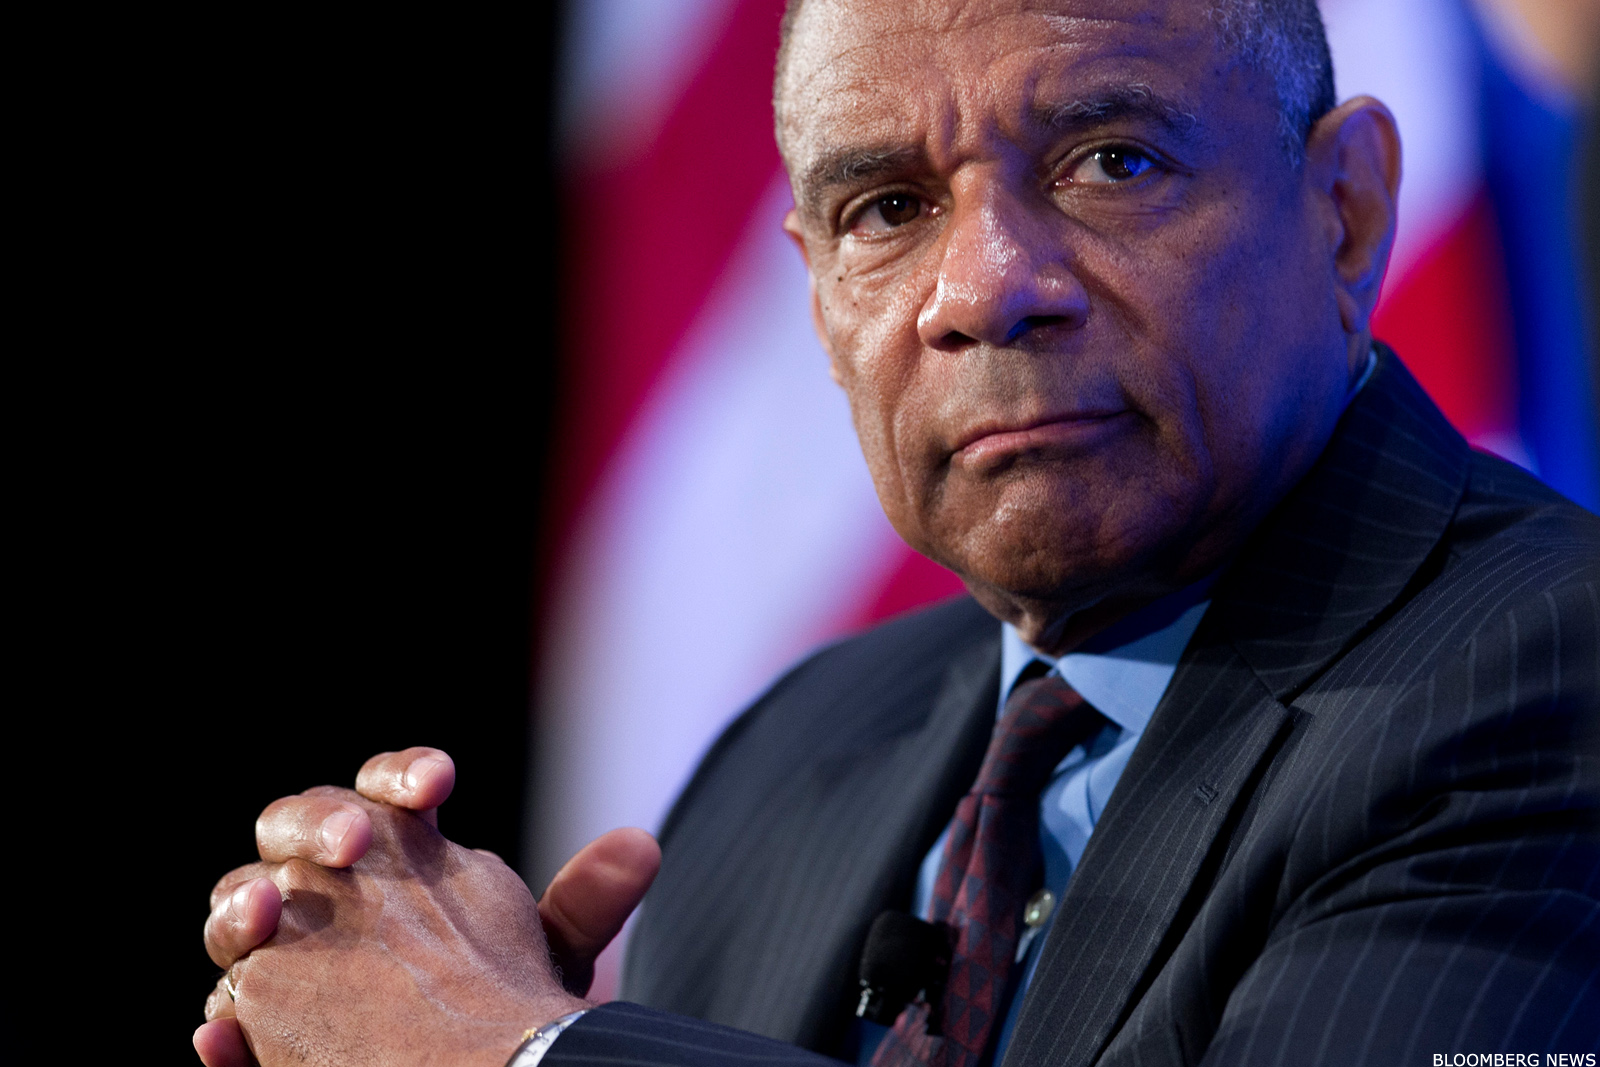 Kenneth Chenault became CEO of American Express in January 2001.